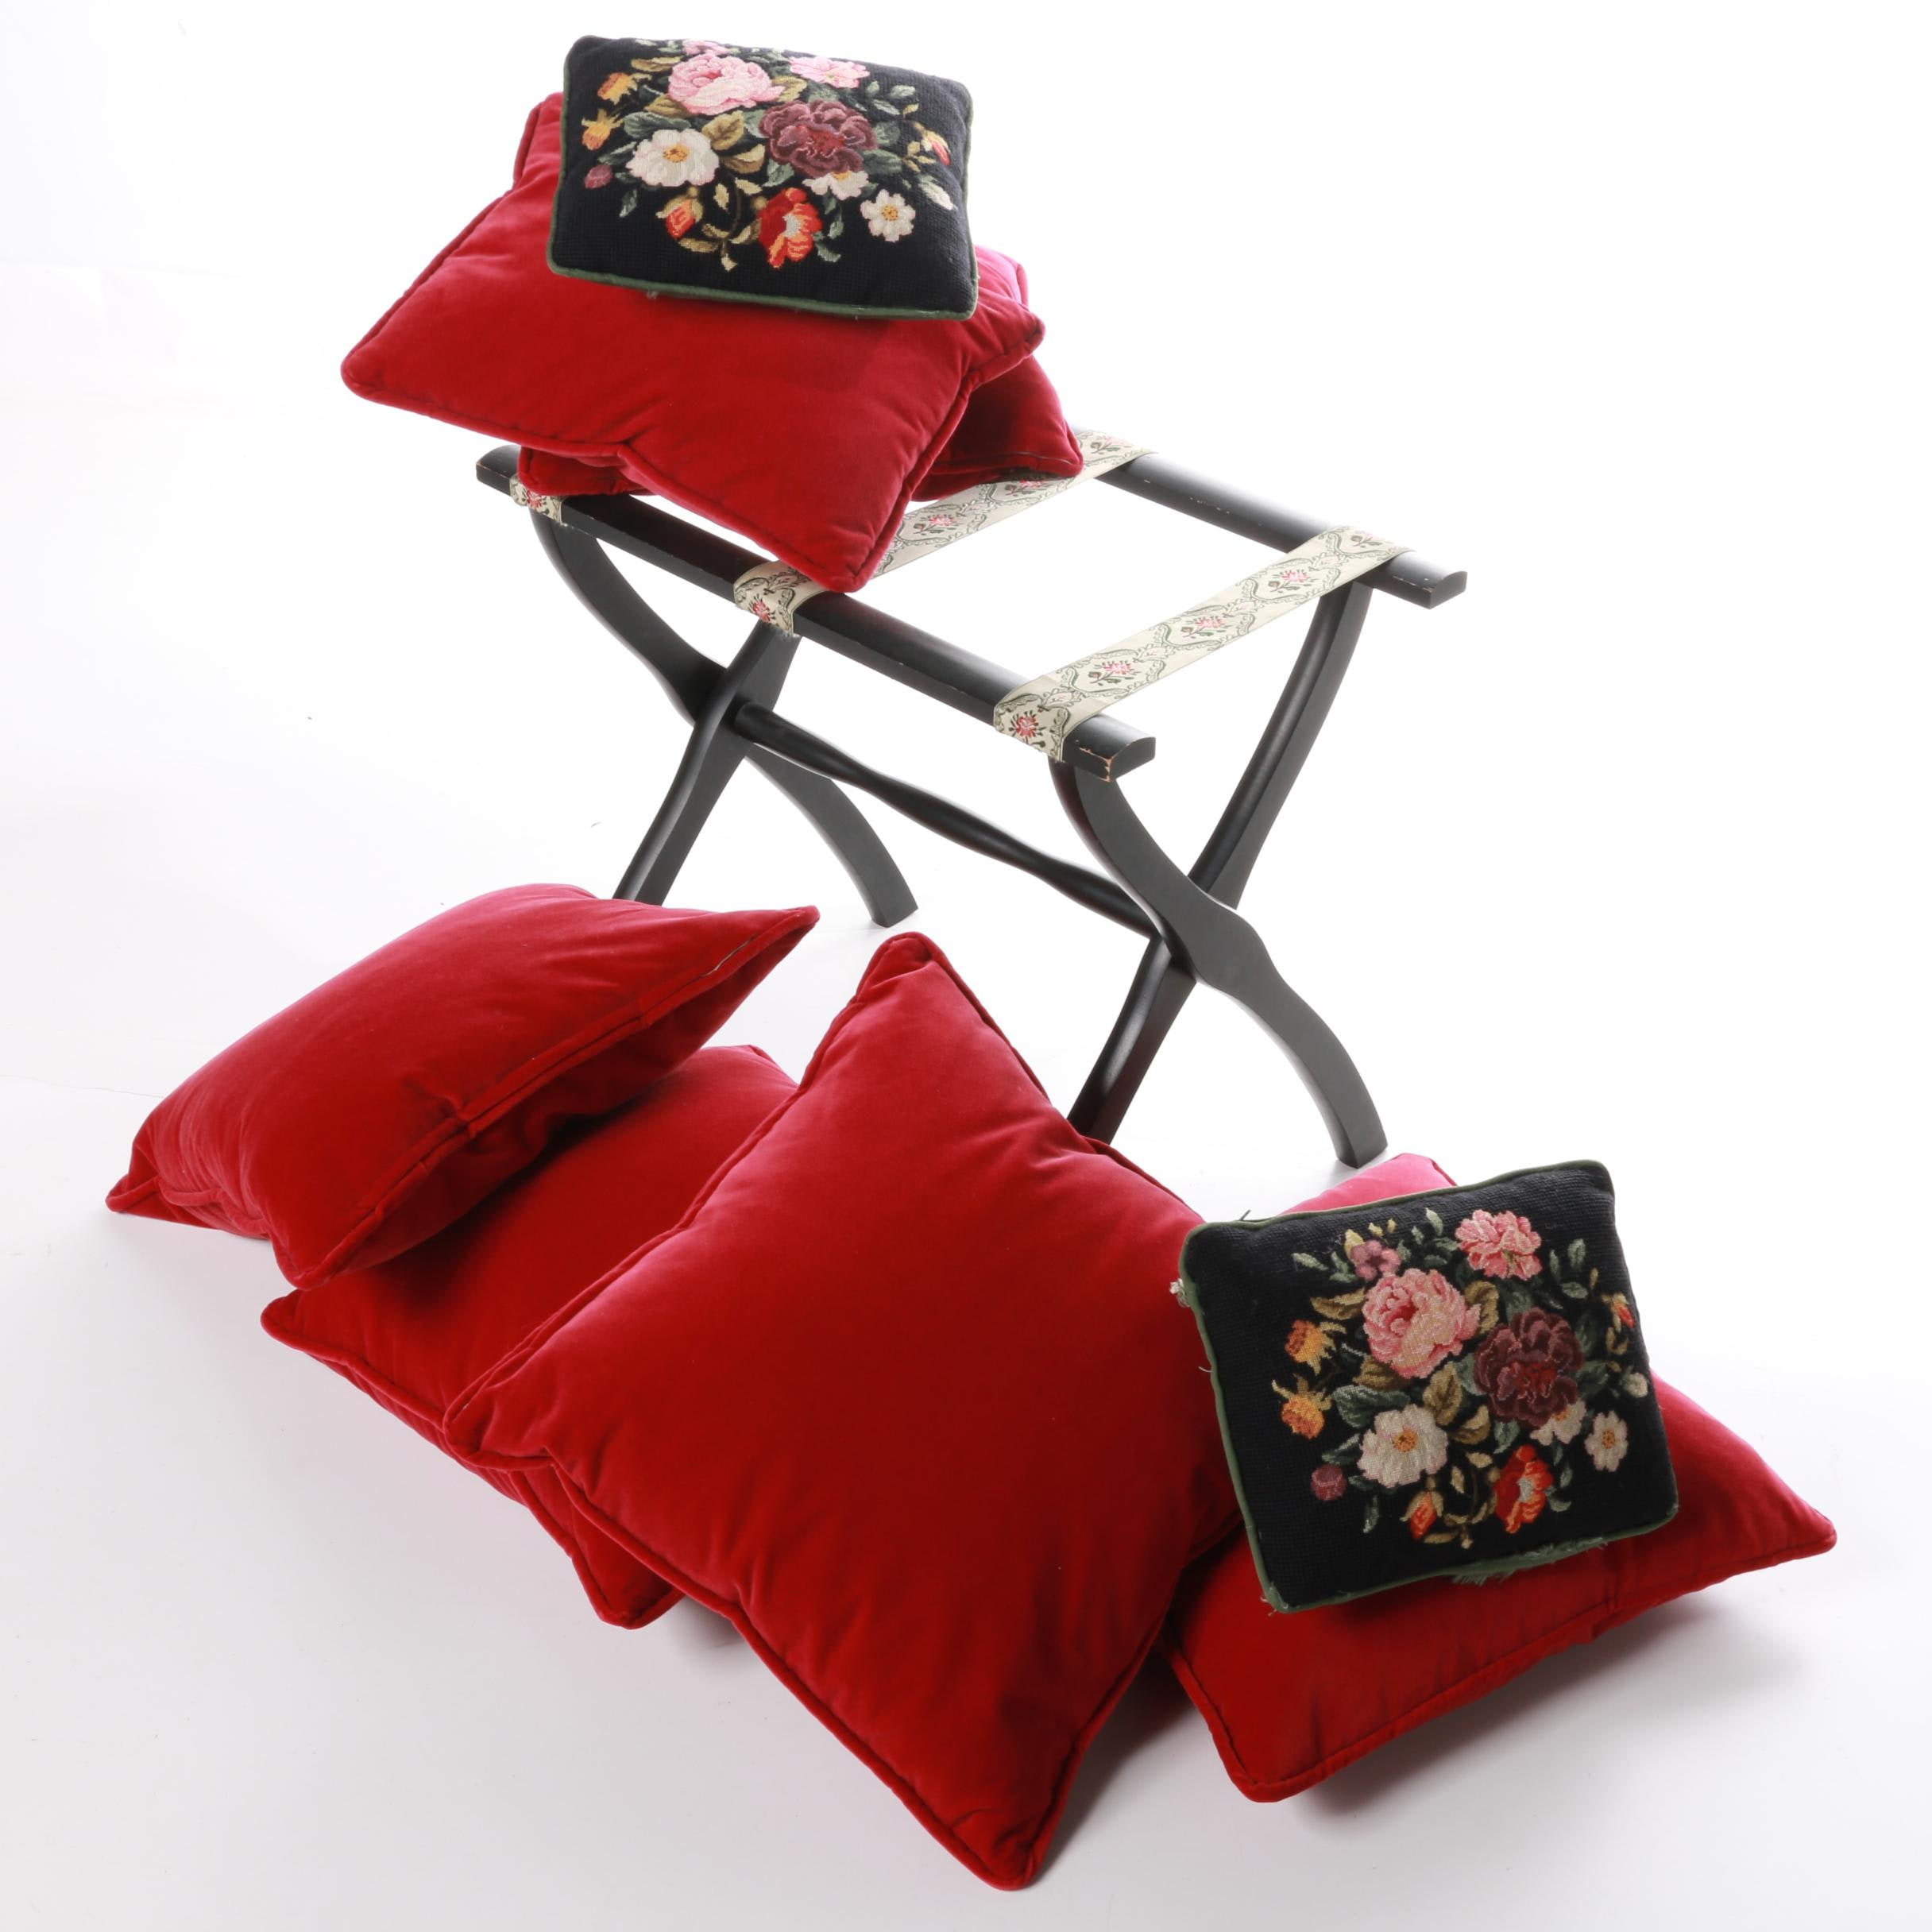 Collection of Accent Pillows and Luggage Rack